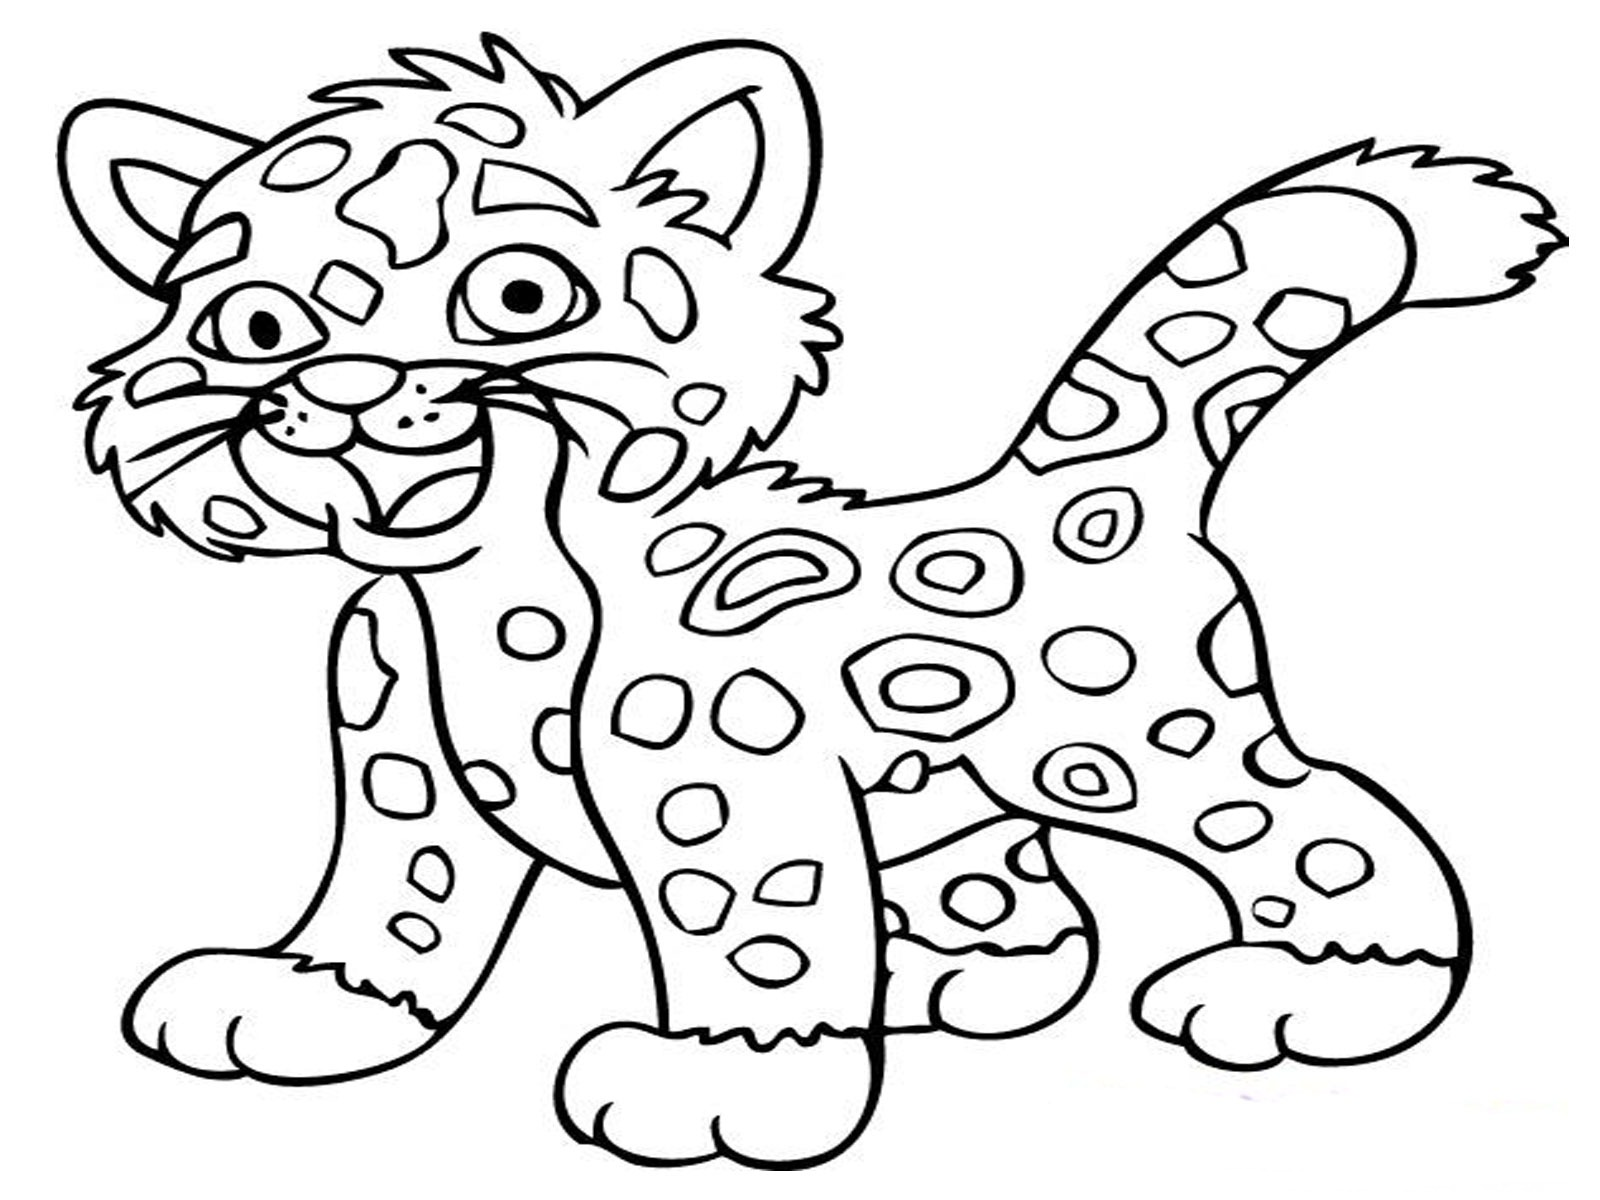 Animal Coloring Pages (9) | Coloring Kids